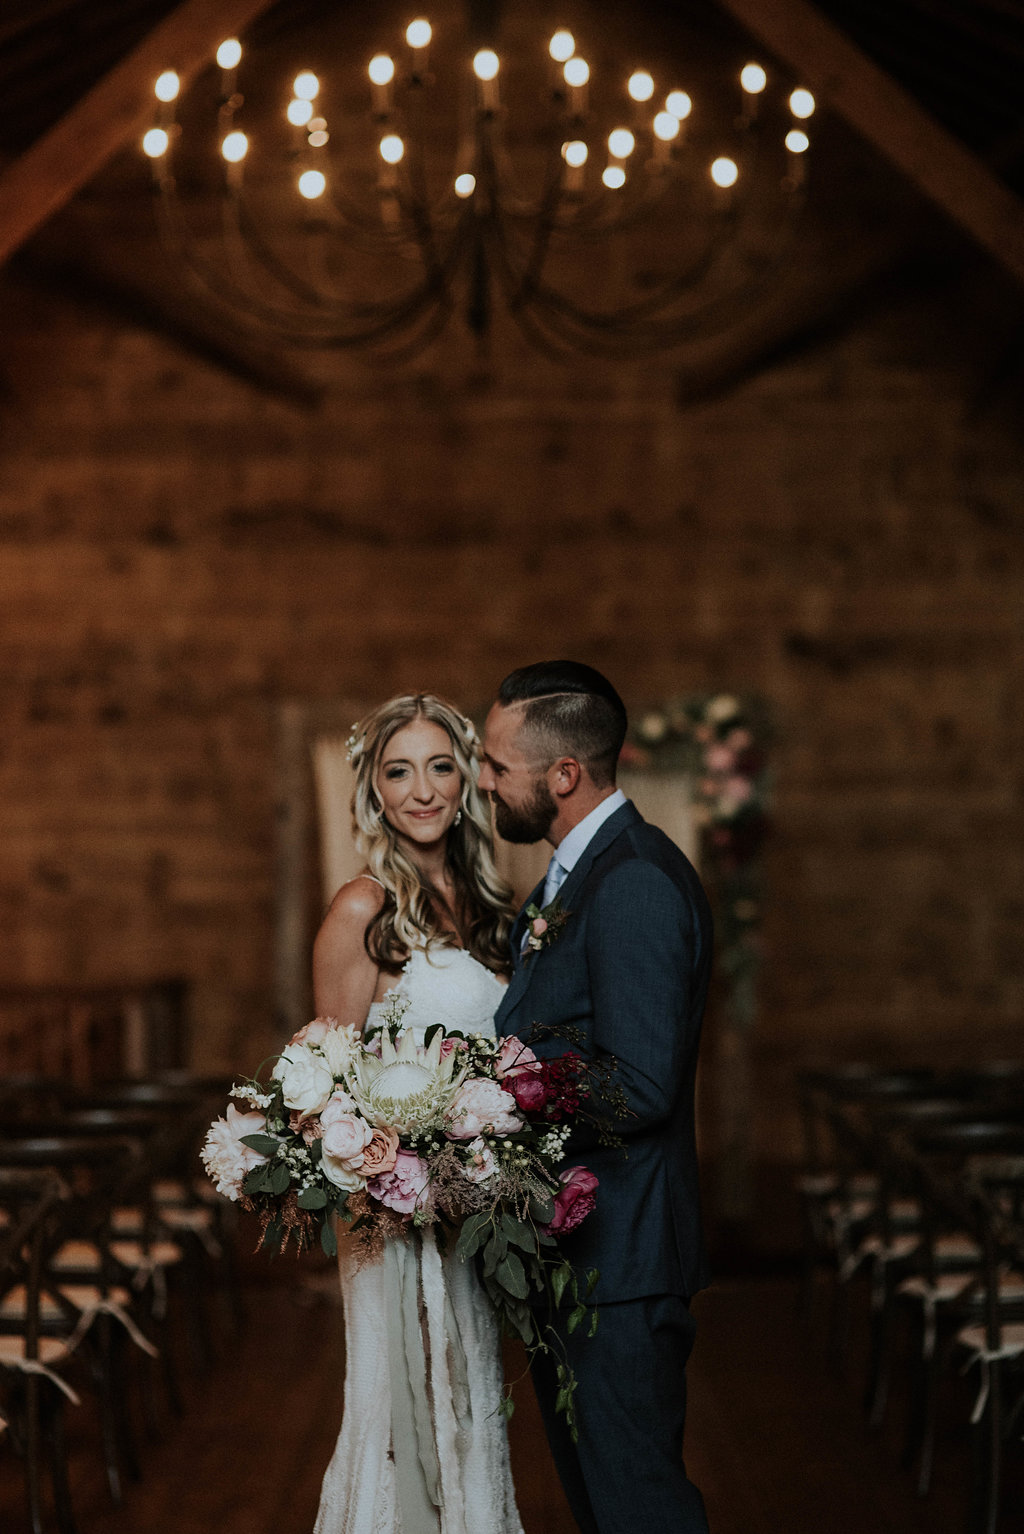 Whitney and Tyson, Ira and Lucy Wedding Planner, Boise Wedding, Maggie Grace Photography